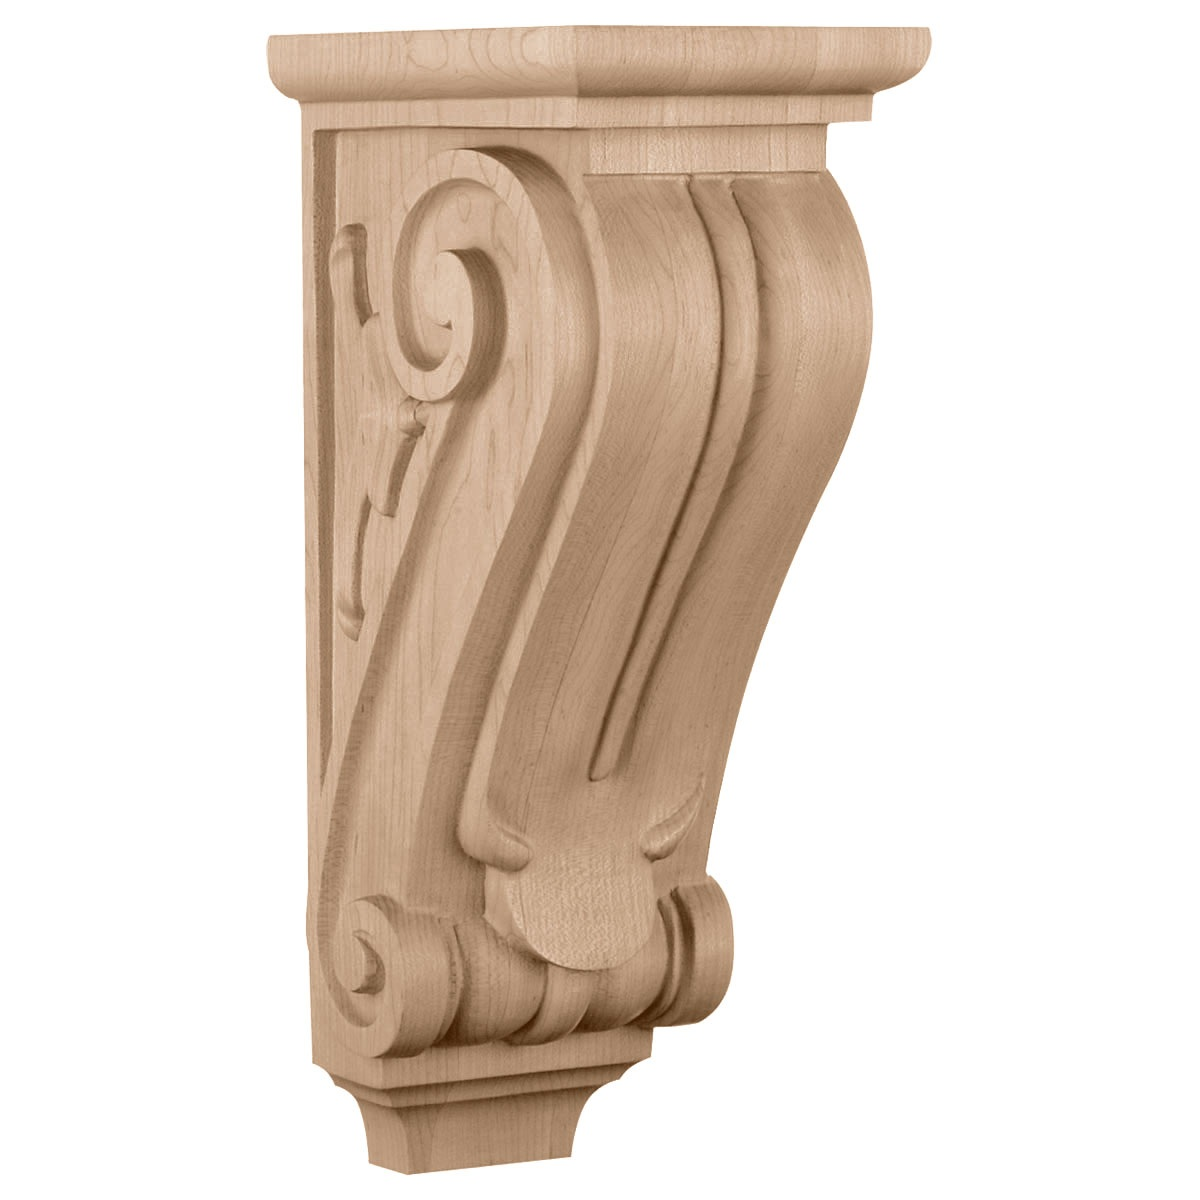 CORCL2 Small Classical Corbel